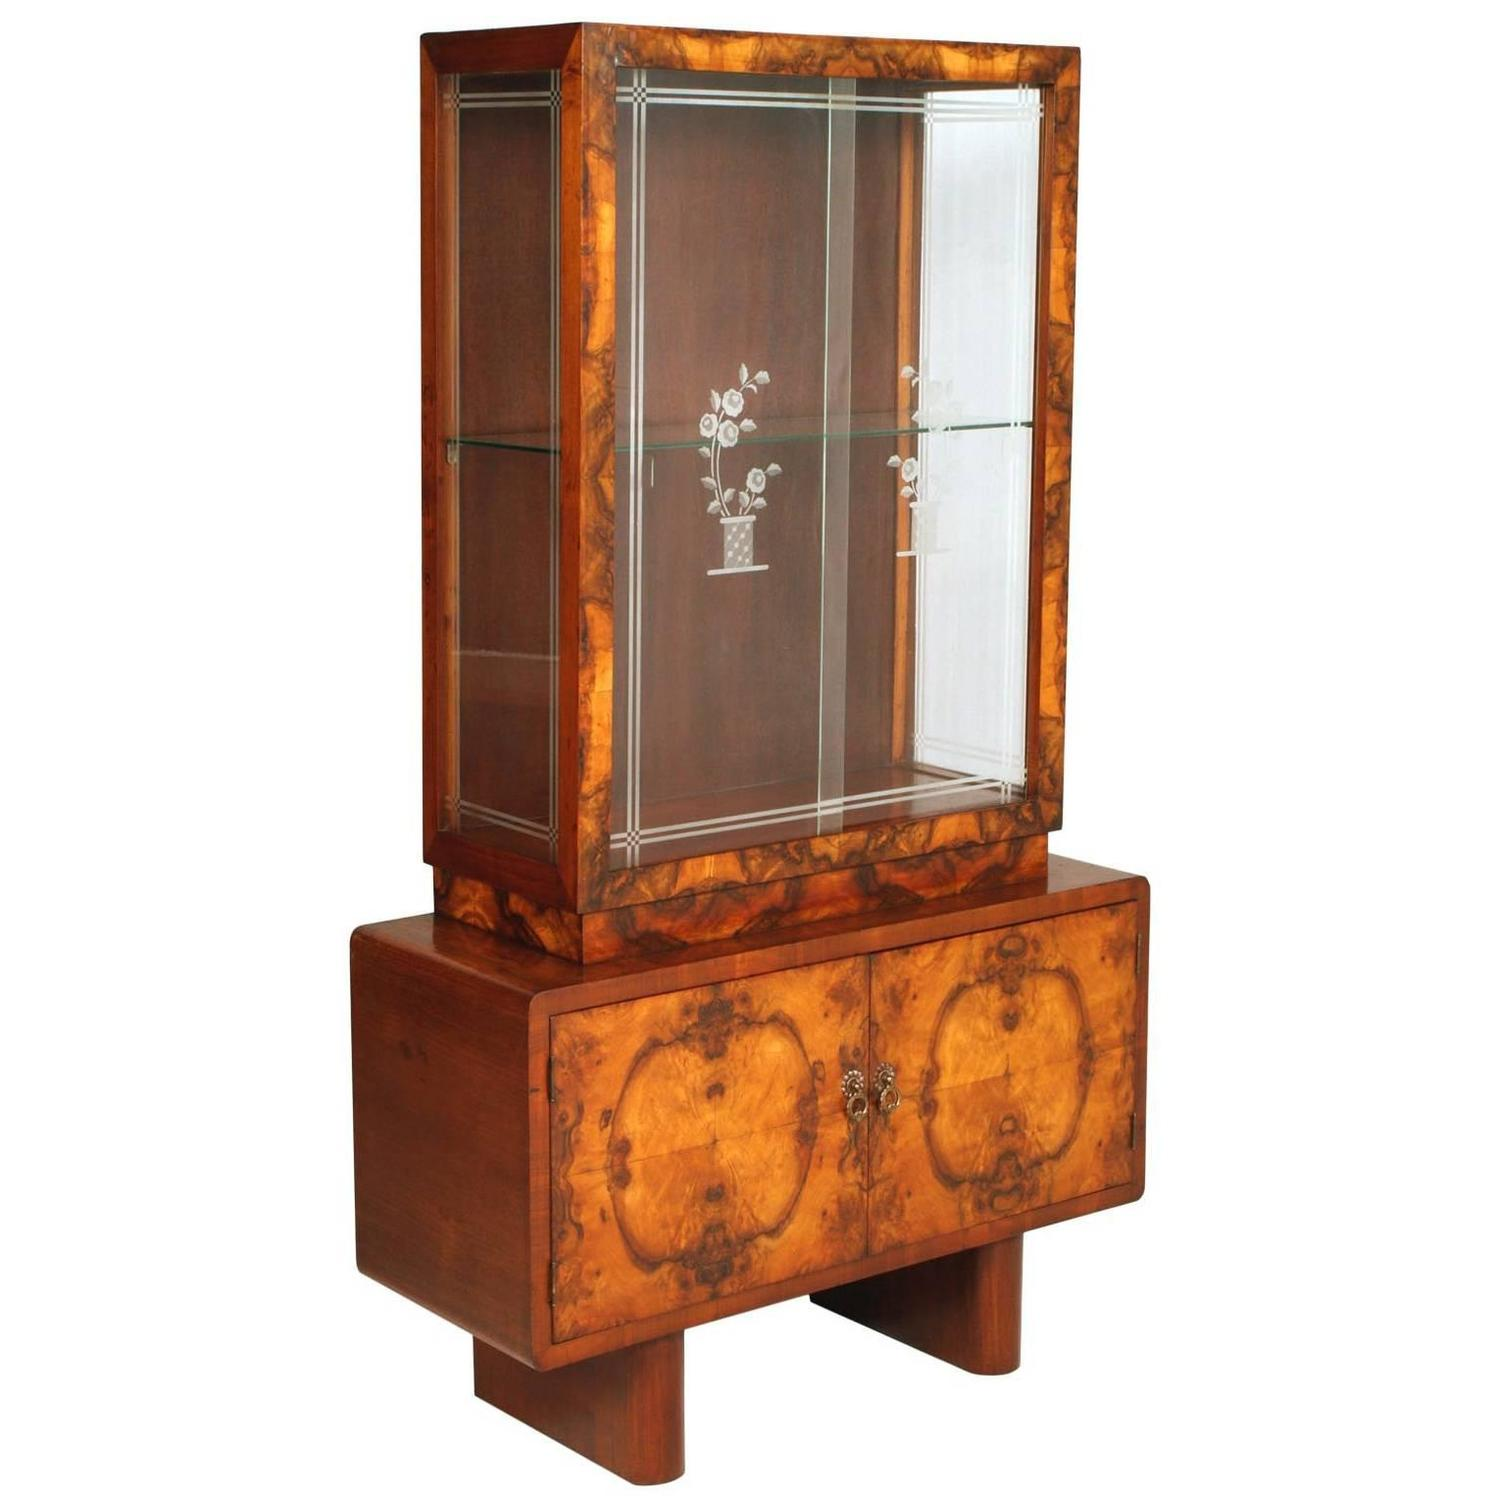 Art Deco Gio Ponti manner Vitrine Cupboard by Meroni and Fossati ...